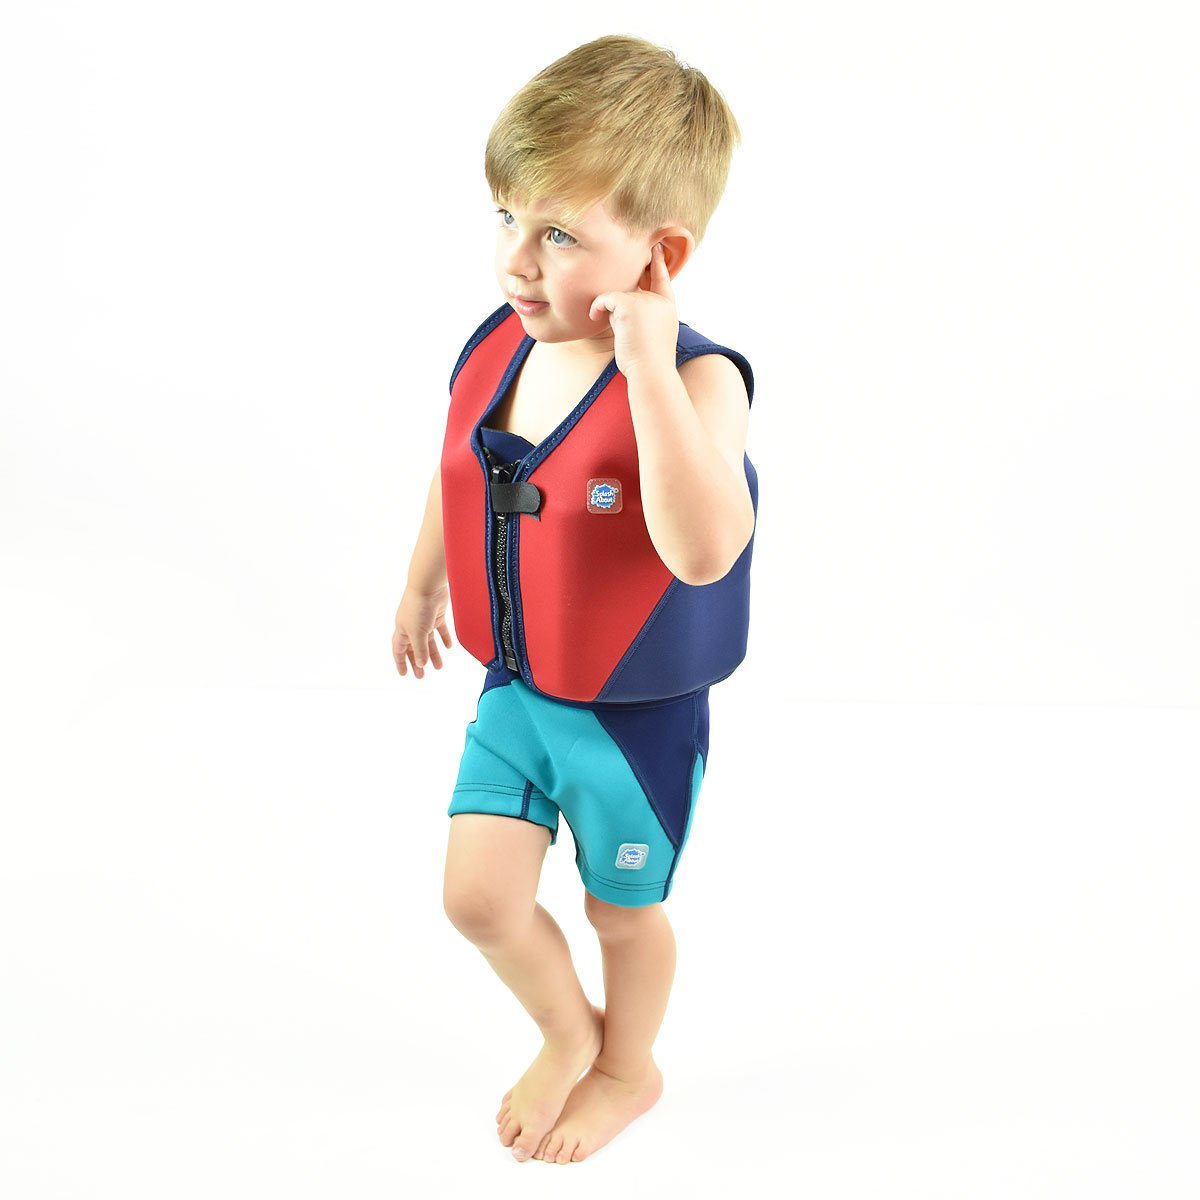 Amazon.com: Splash About Neoprene Float Jacket with adjustable buoyancy (swimming aid), Red & Navy, 6 to 10 years: Clothing